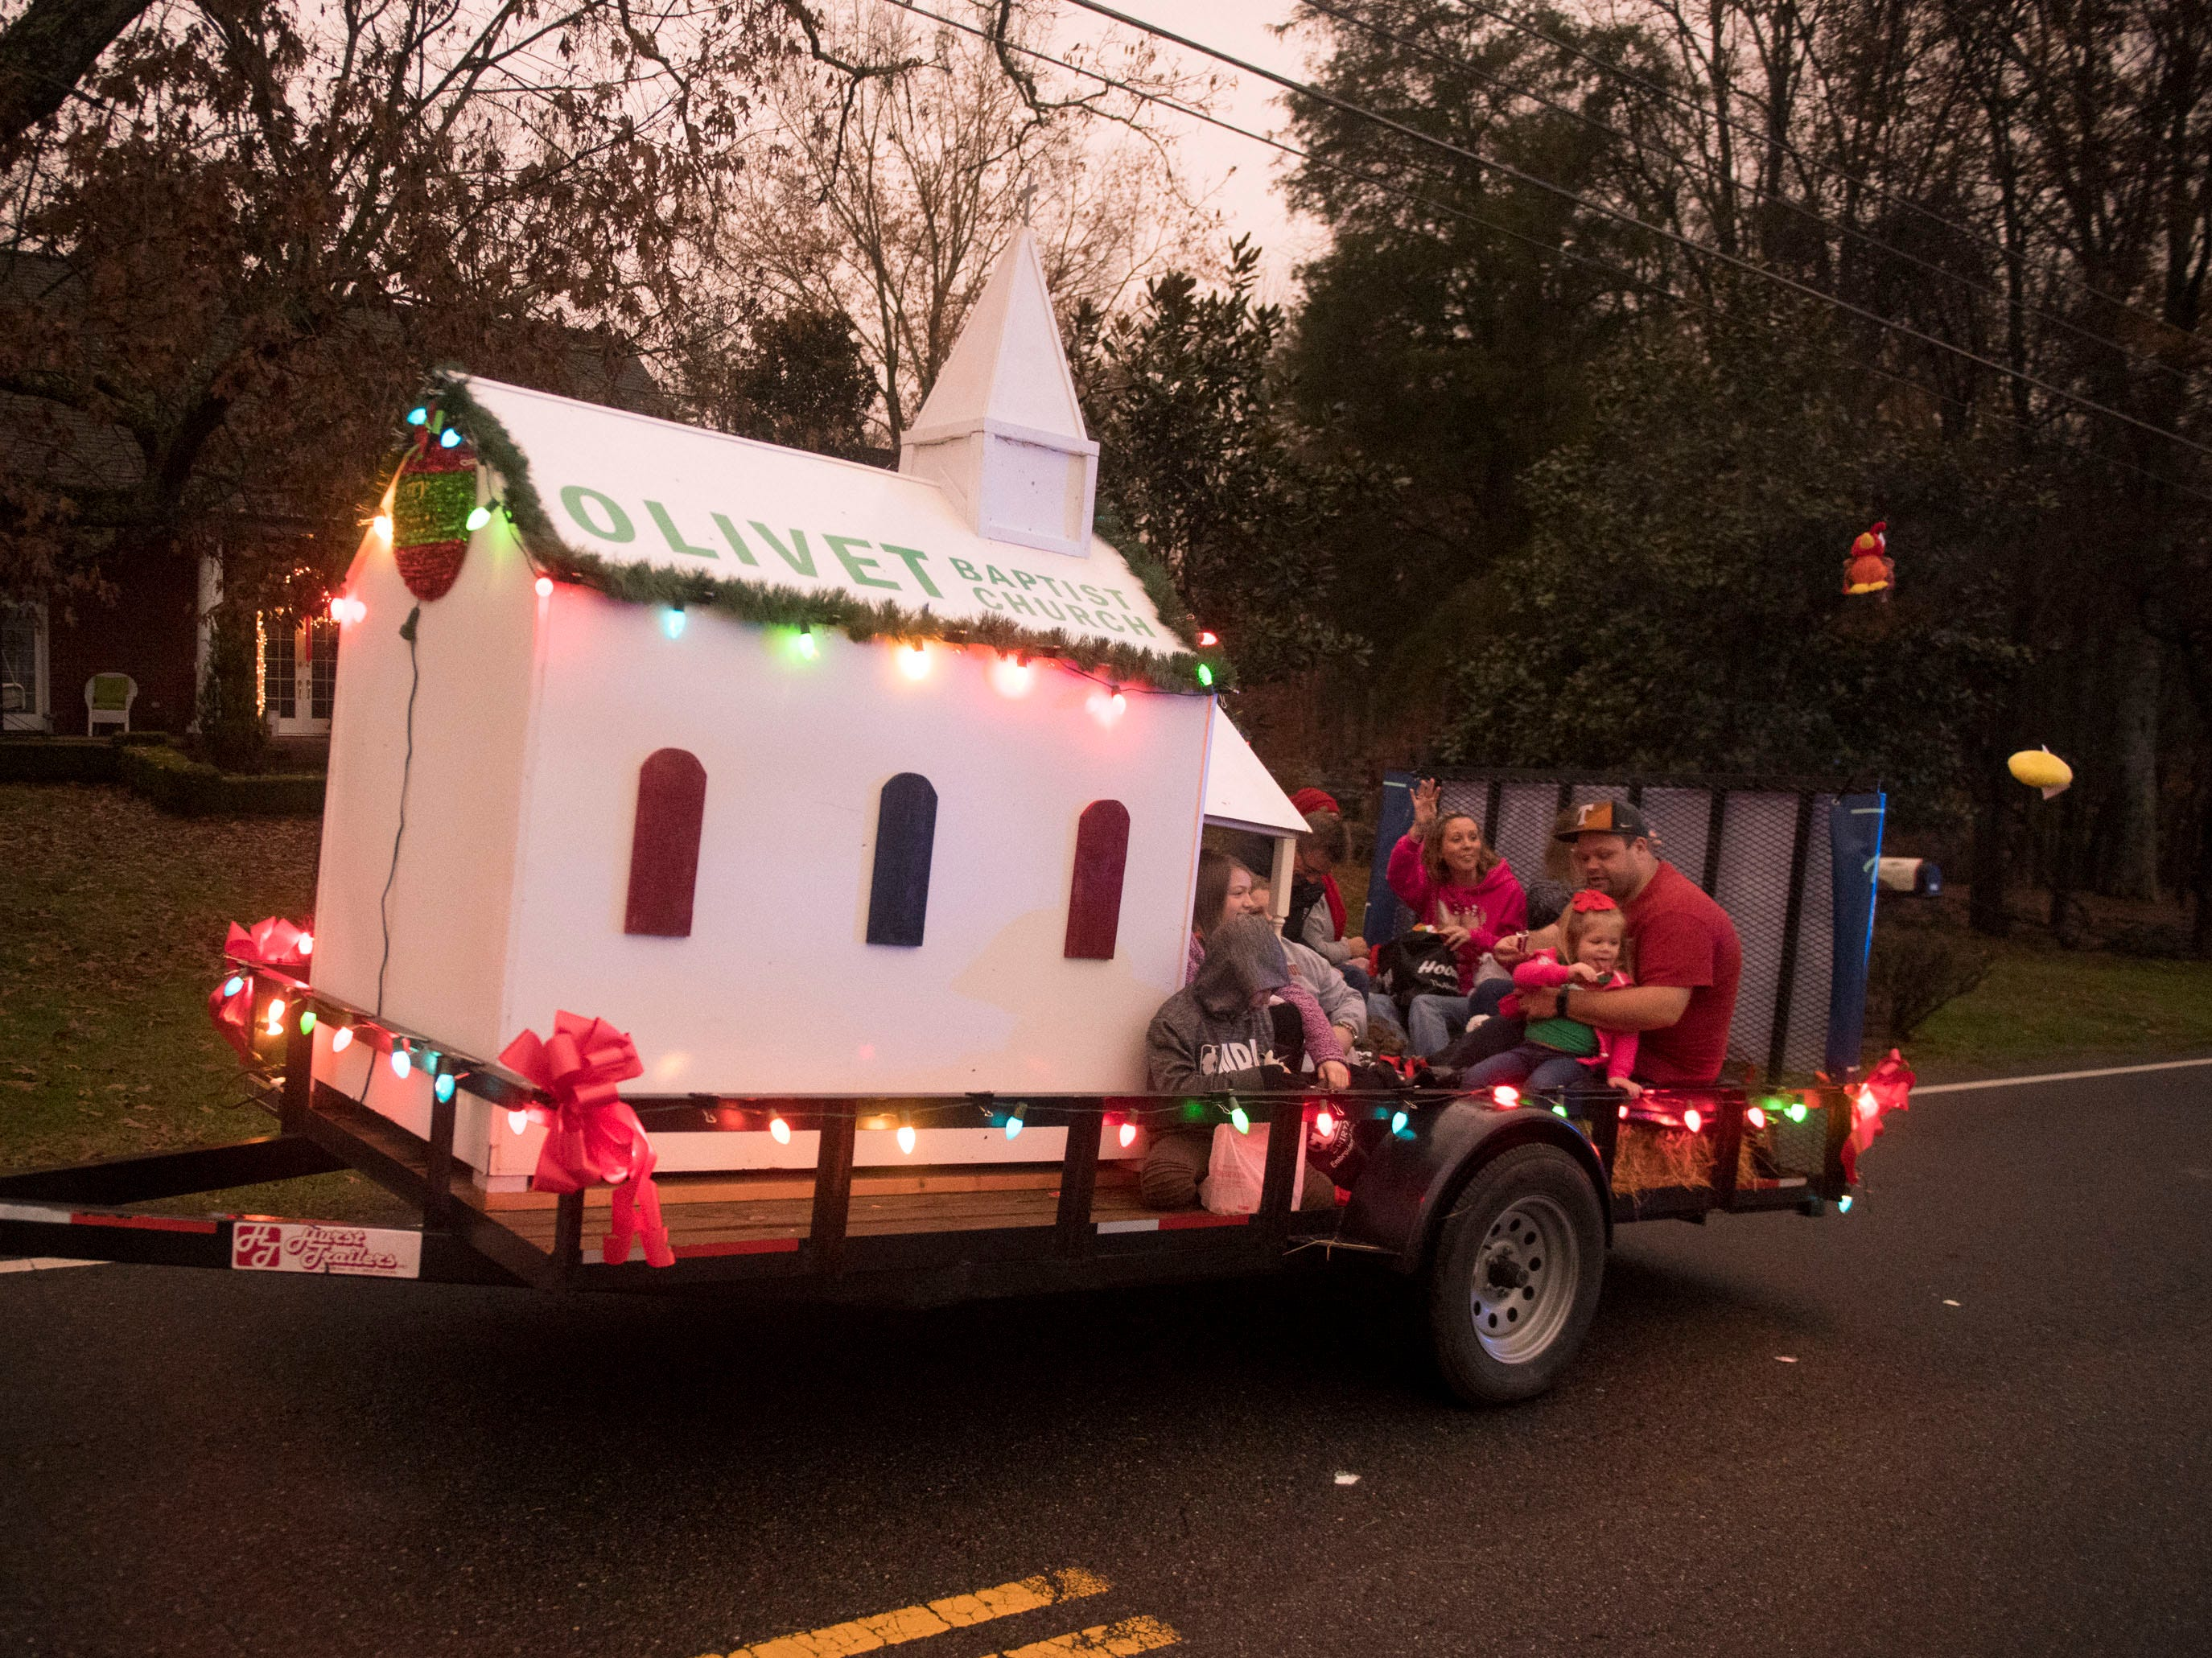 The Olivet Baptist Church float in the Powell Lions Club Christmas Parade on Saturday, December 1, 2018.